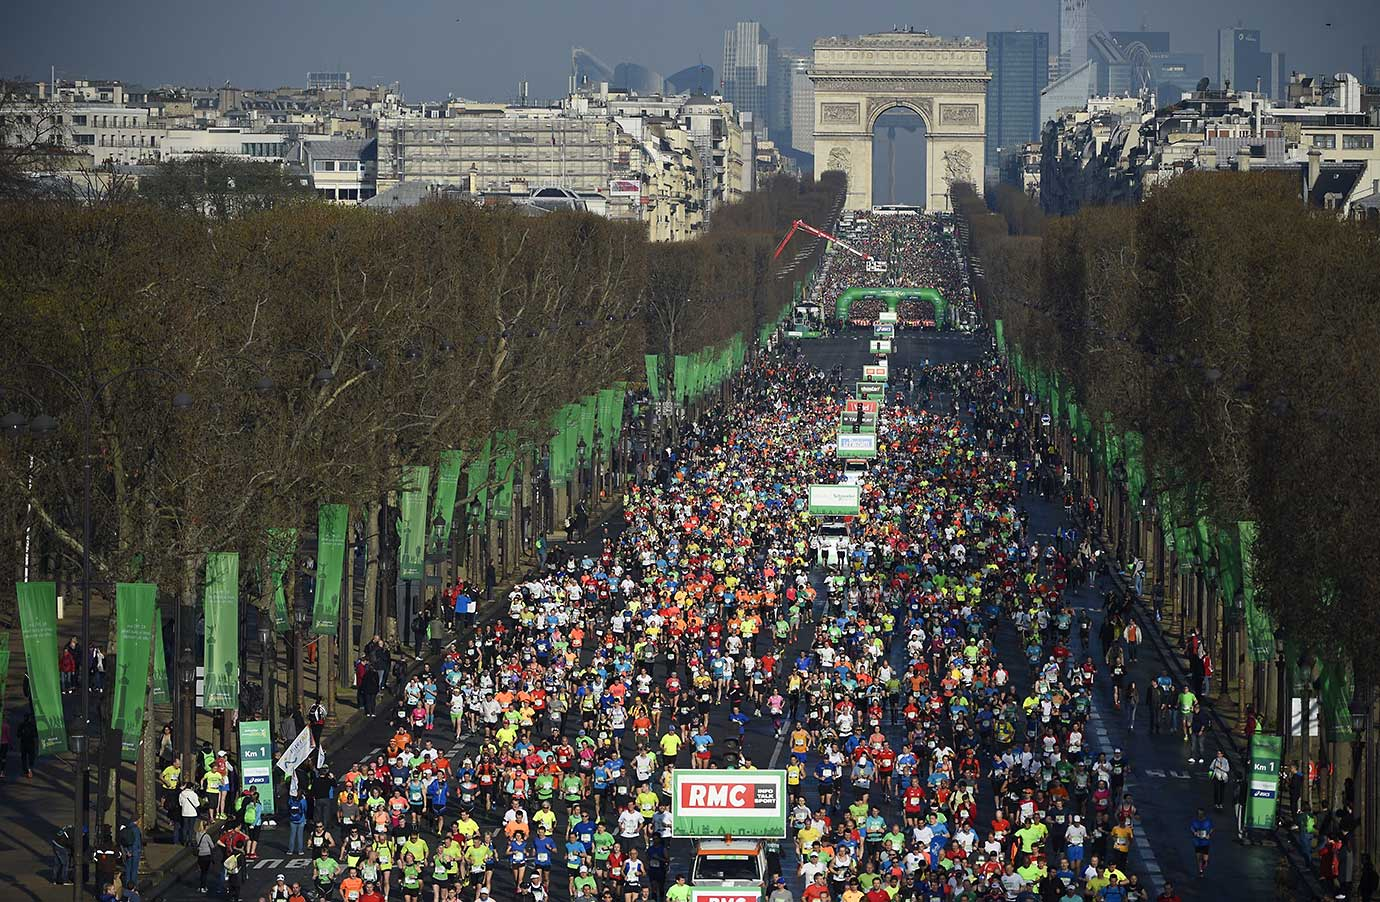 Some 57,000 participants from 160 countries take the start of the 40th Paris Marathon near the Arc de Triomphe monument.